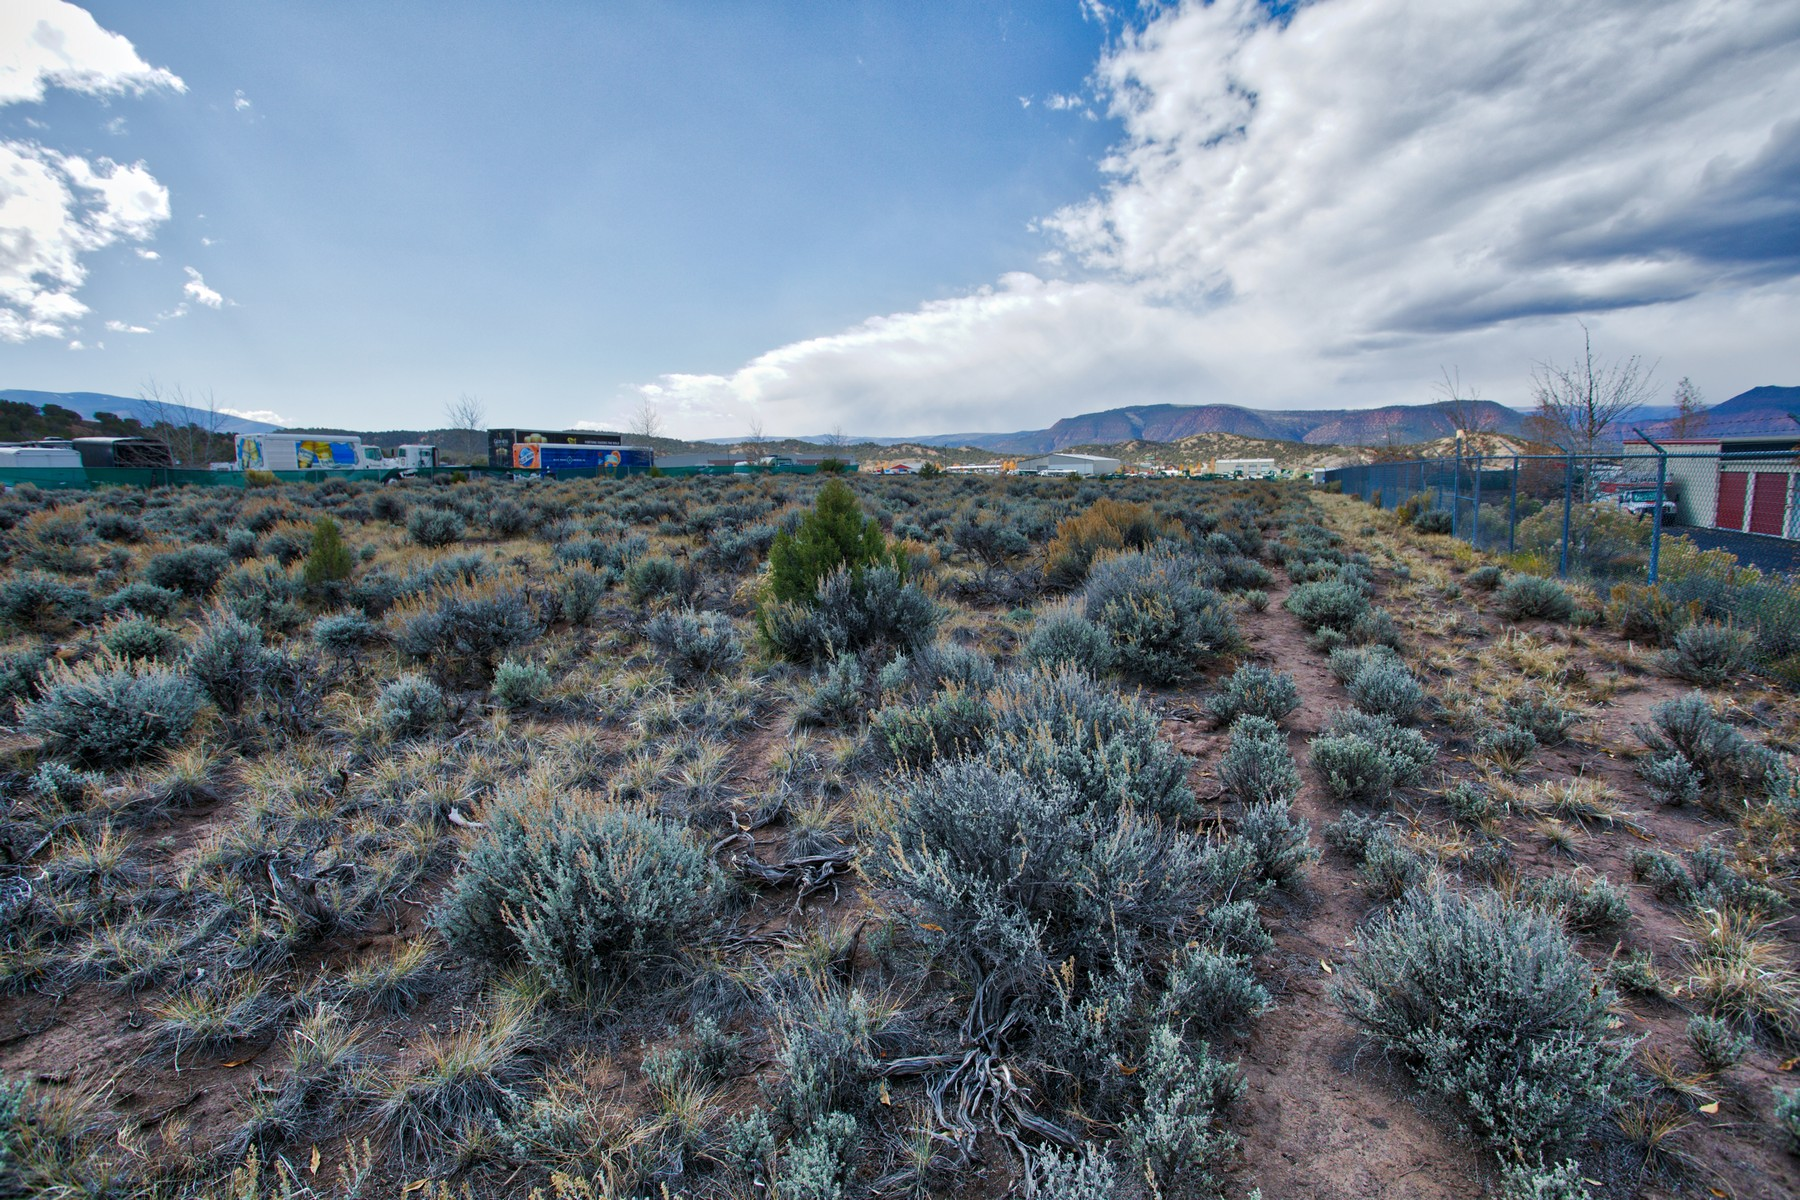 Property for Active at Flat 1.5 Acre Site Situated Across From Airport & Jet Center 400 Airpark Drive Gypsum, Colorado 81637 United States